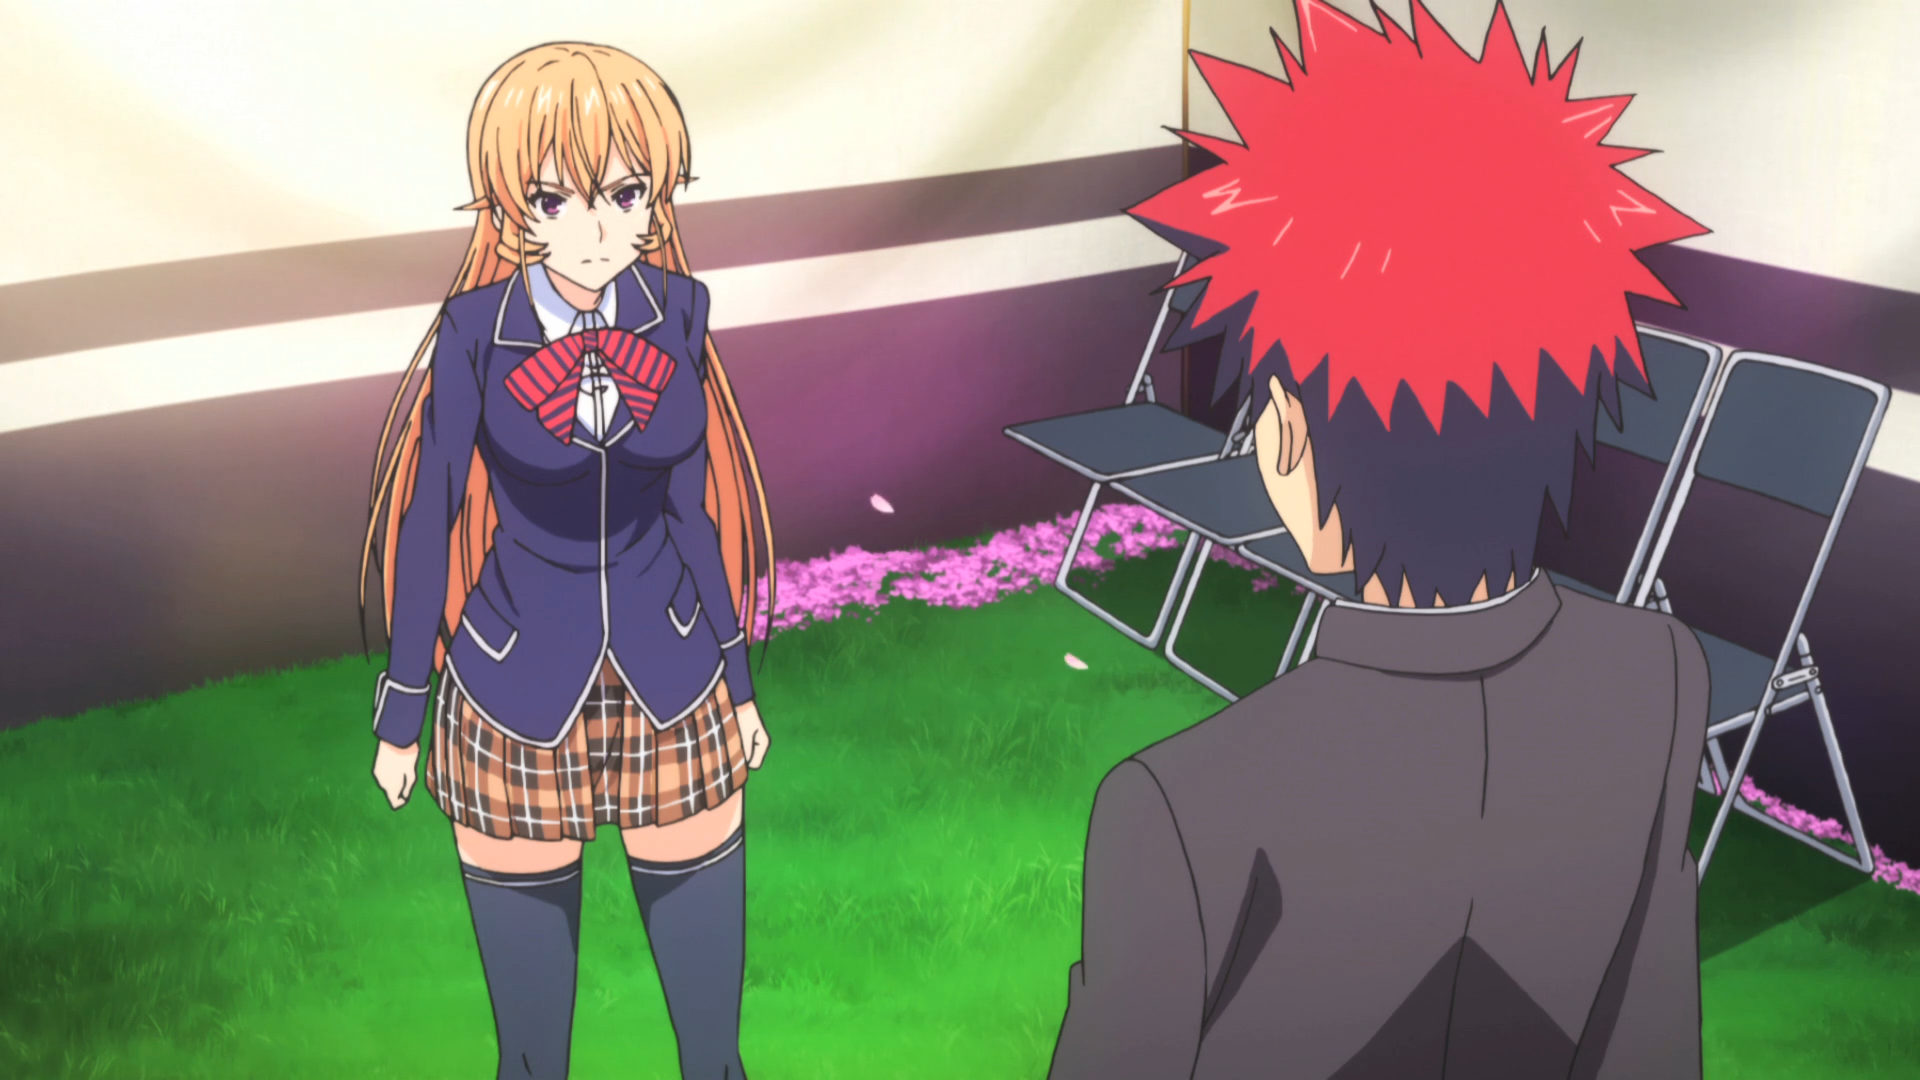 [HorribleSubs] Shokugeki no Soma - 03 [1080p]_001_11601